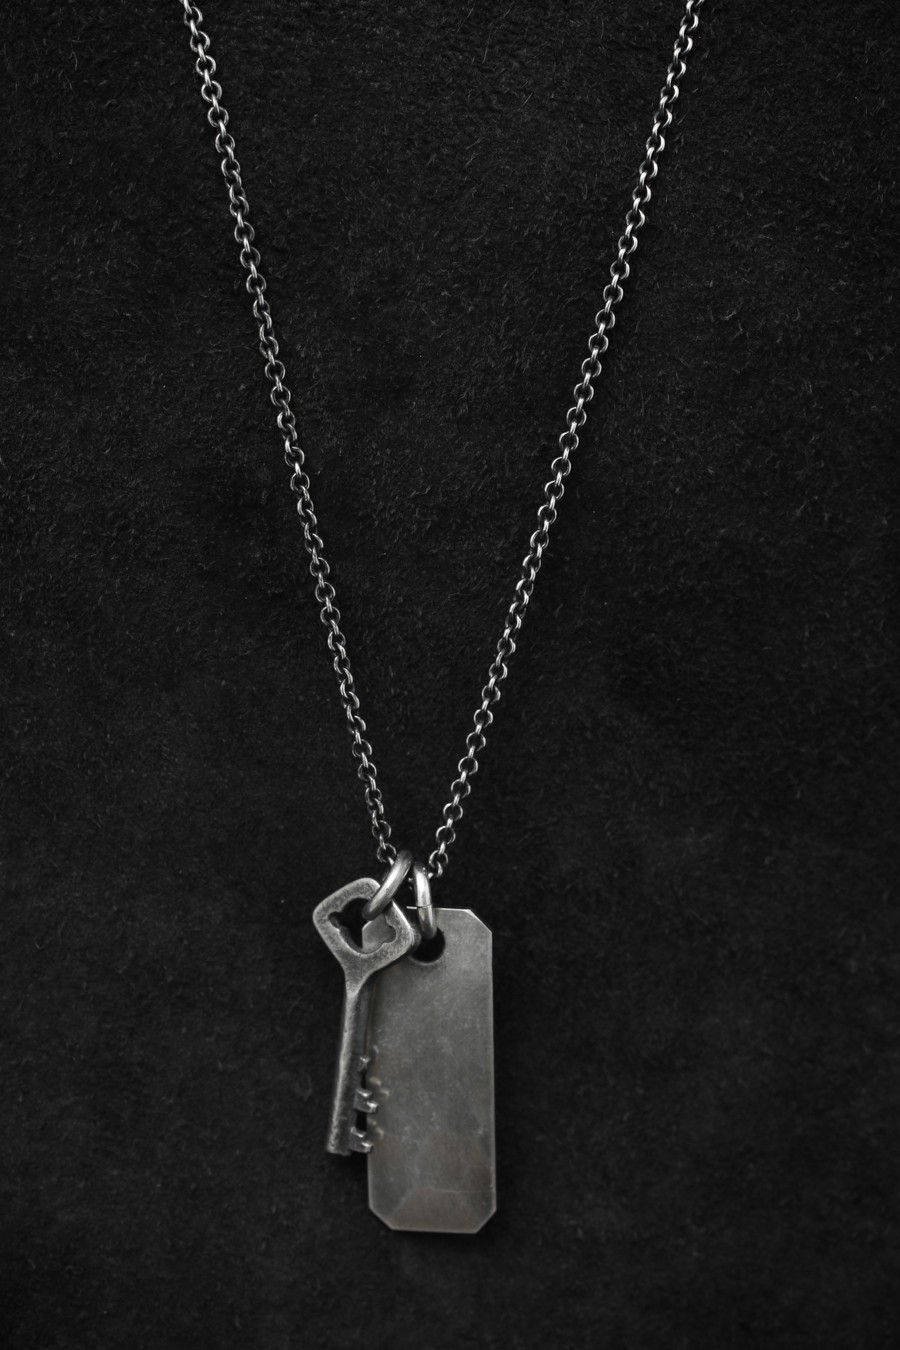 Fine Chain Key + Tag Necklace